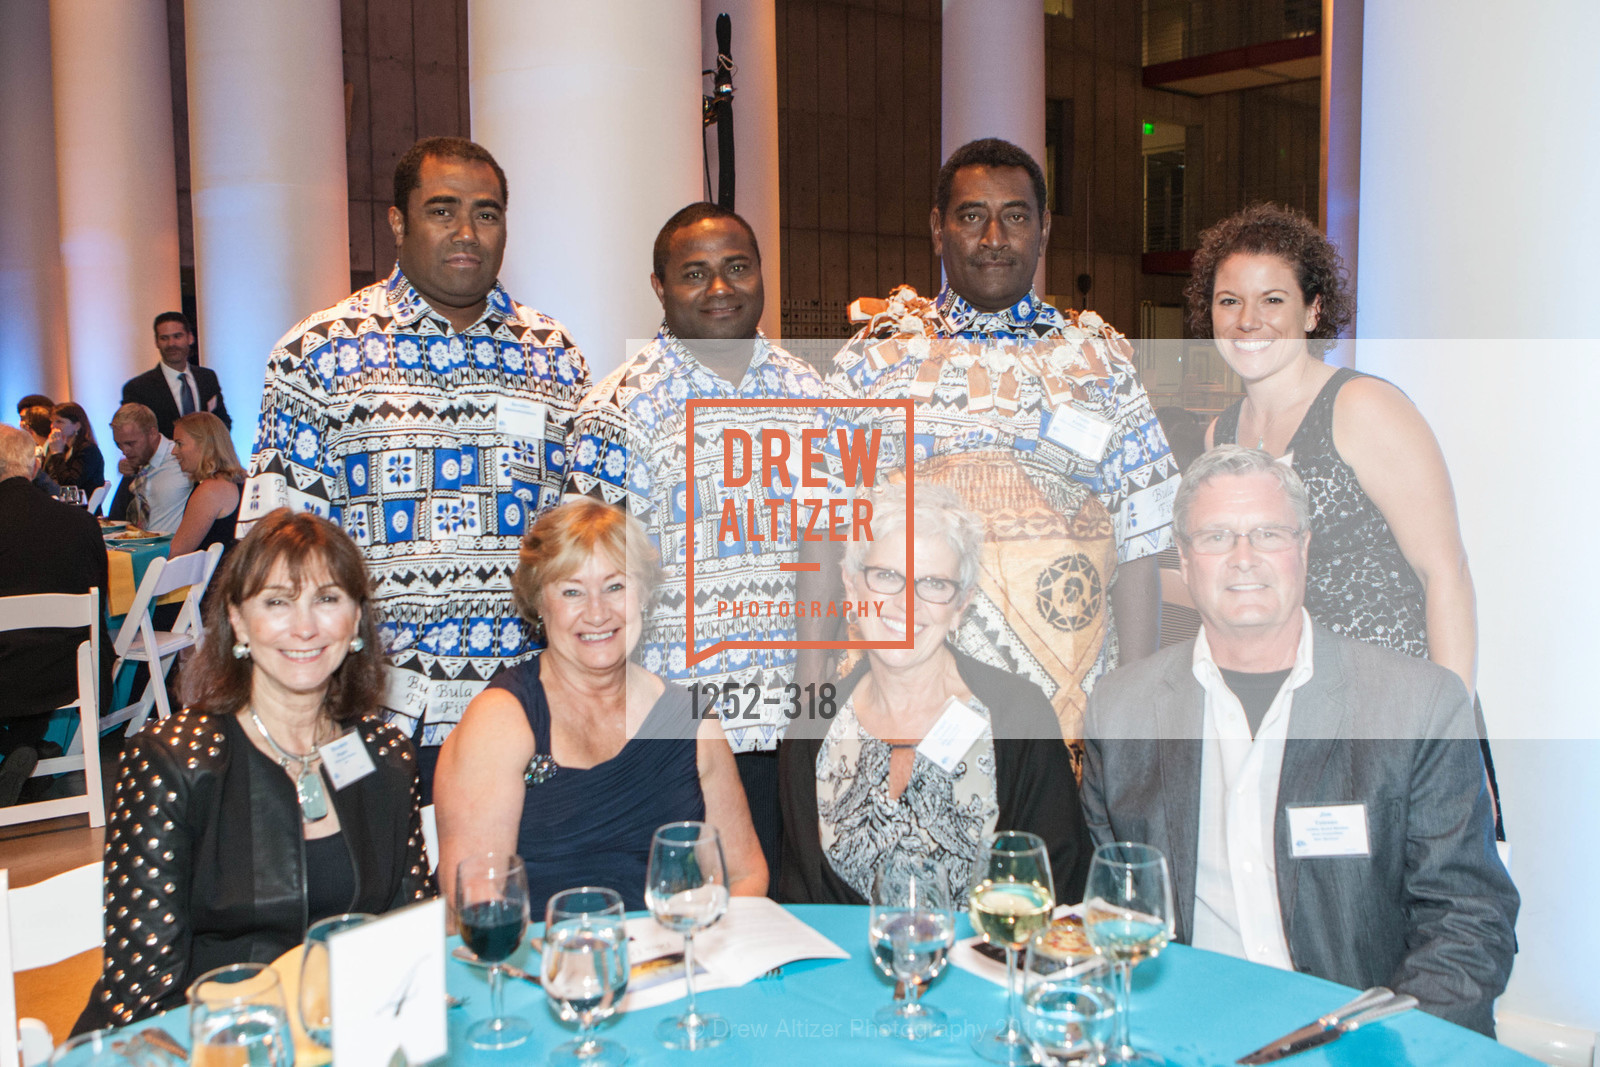 Elizabeth Wagner, Sevuloni Baleinakorodawa, Didi Dulunaqio, Ginger Tolonen, Paulo Kolikata, Sarah Eminhizer, Jim Tolonen, Coral Reef Alliance at the California Academy of Sciences, Academy of Sciences, September 26th, 2015,Drew Altizer, Drew Altizer Photography, full-service agency, private events, San Francisco photographer, photographer california